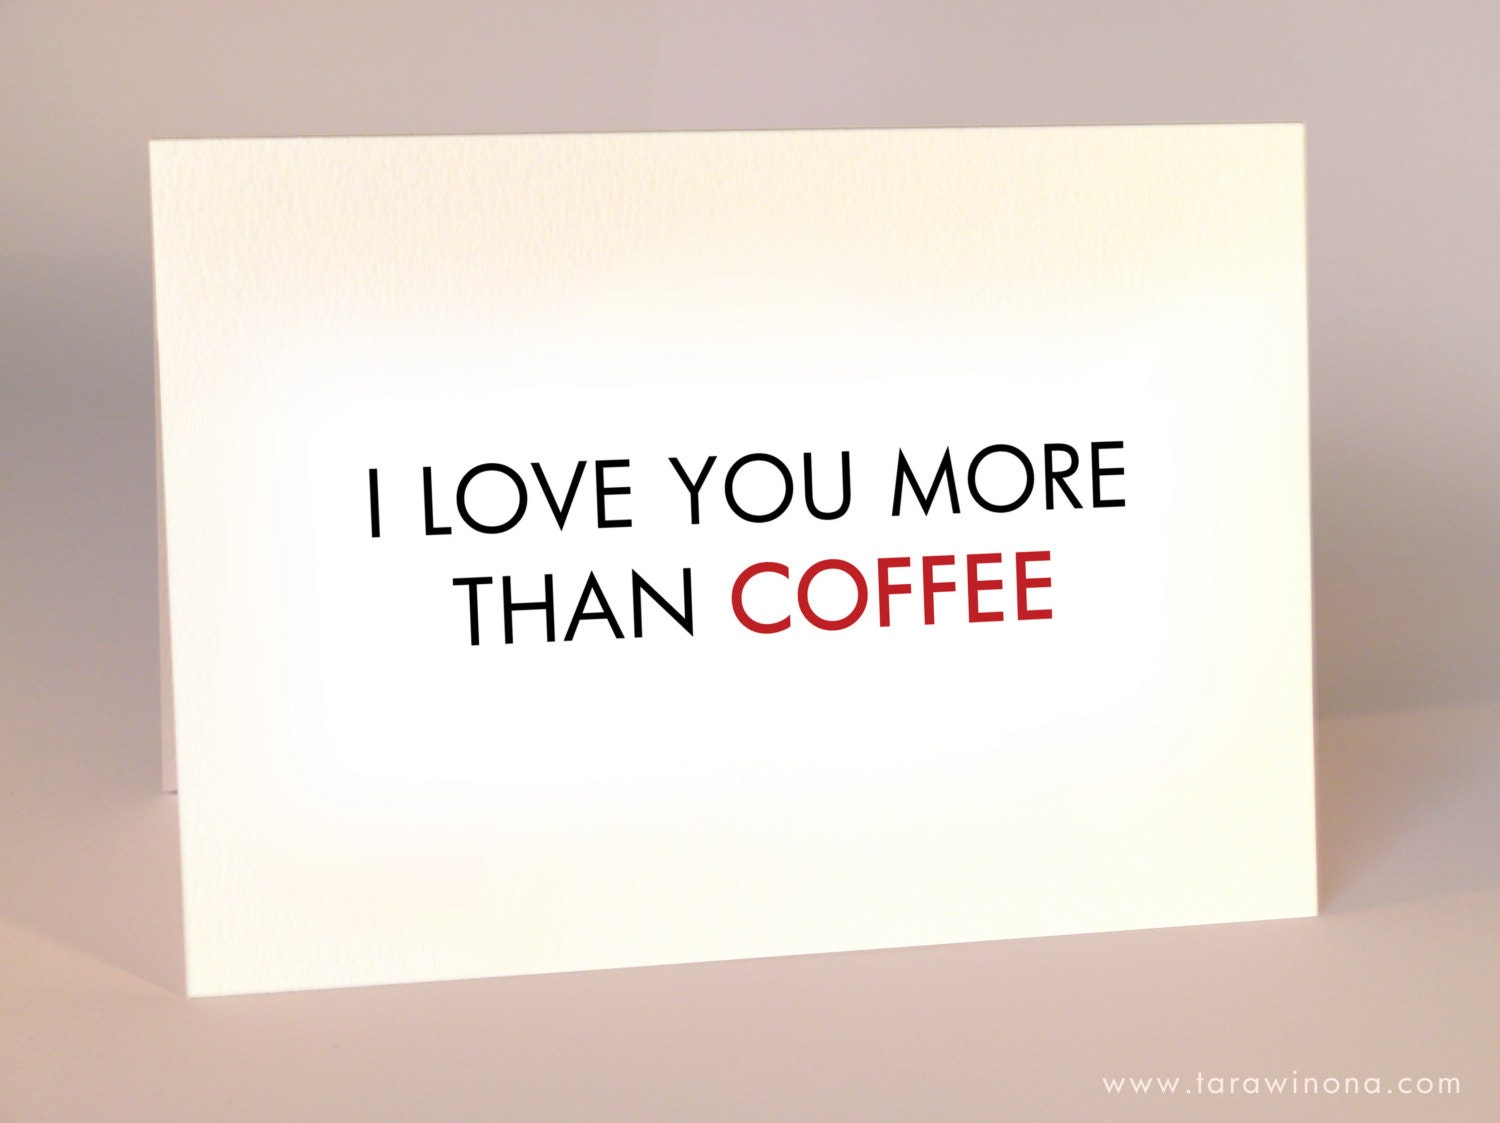 i love you more than coffee - photo #8